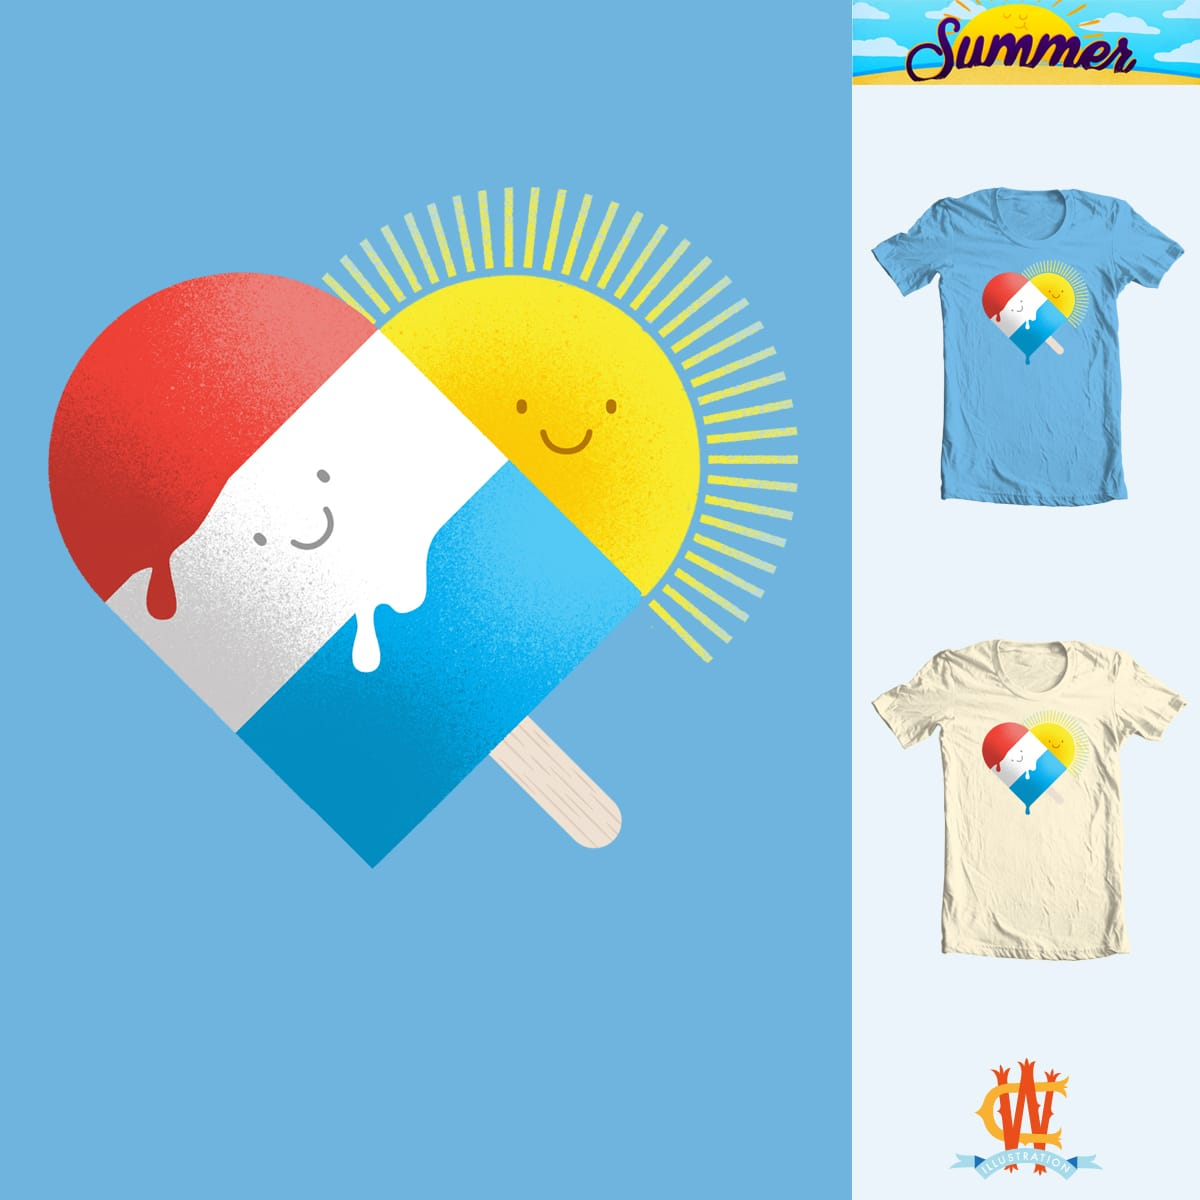 Summer Love scoring over by Wharton on Threadless